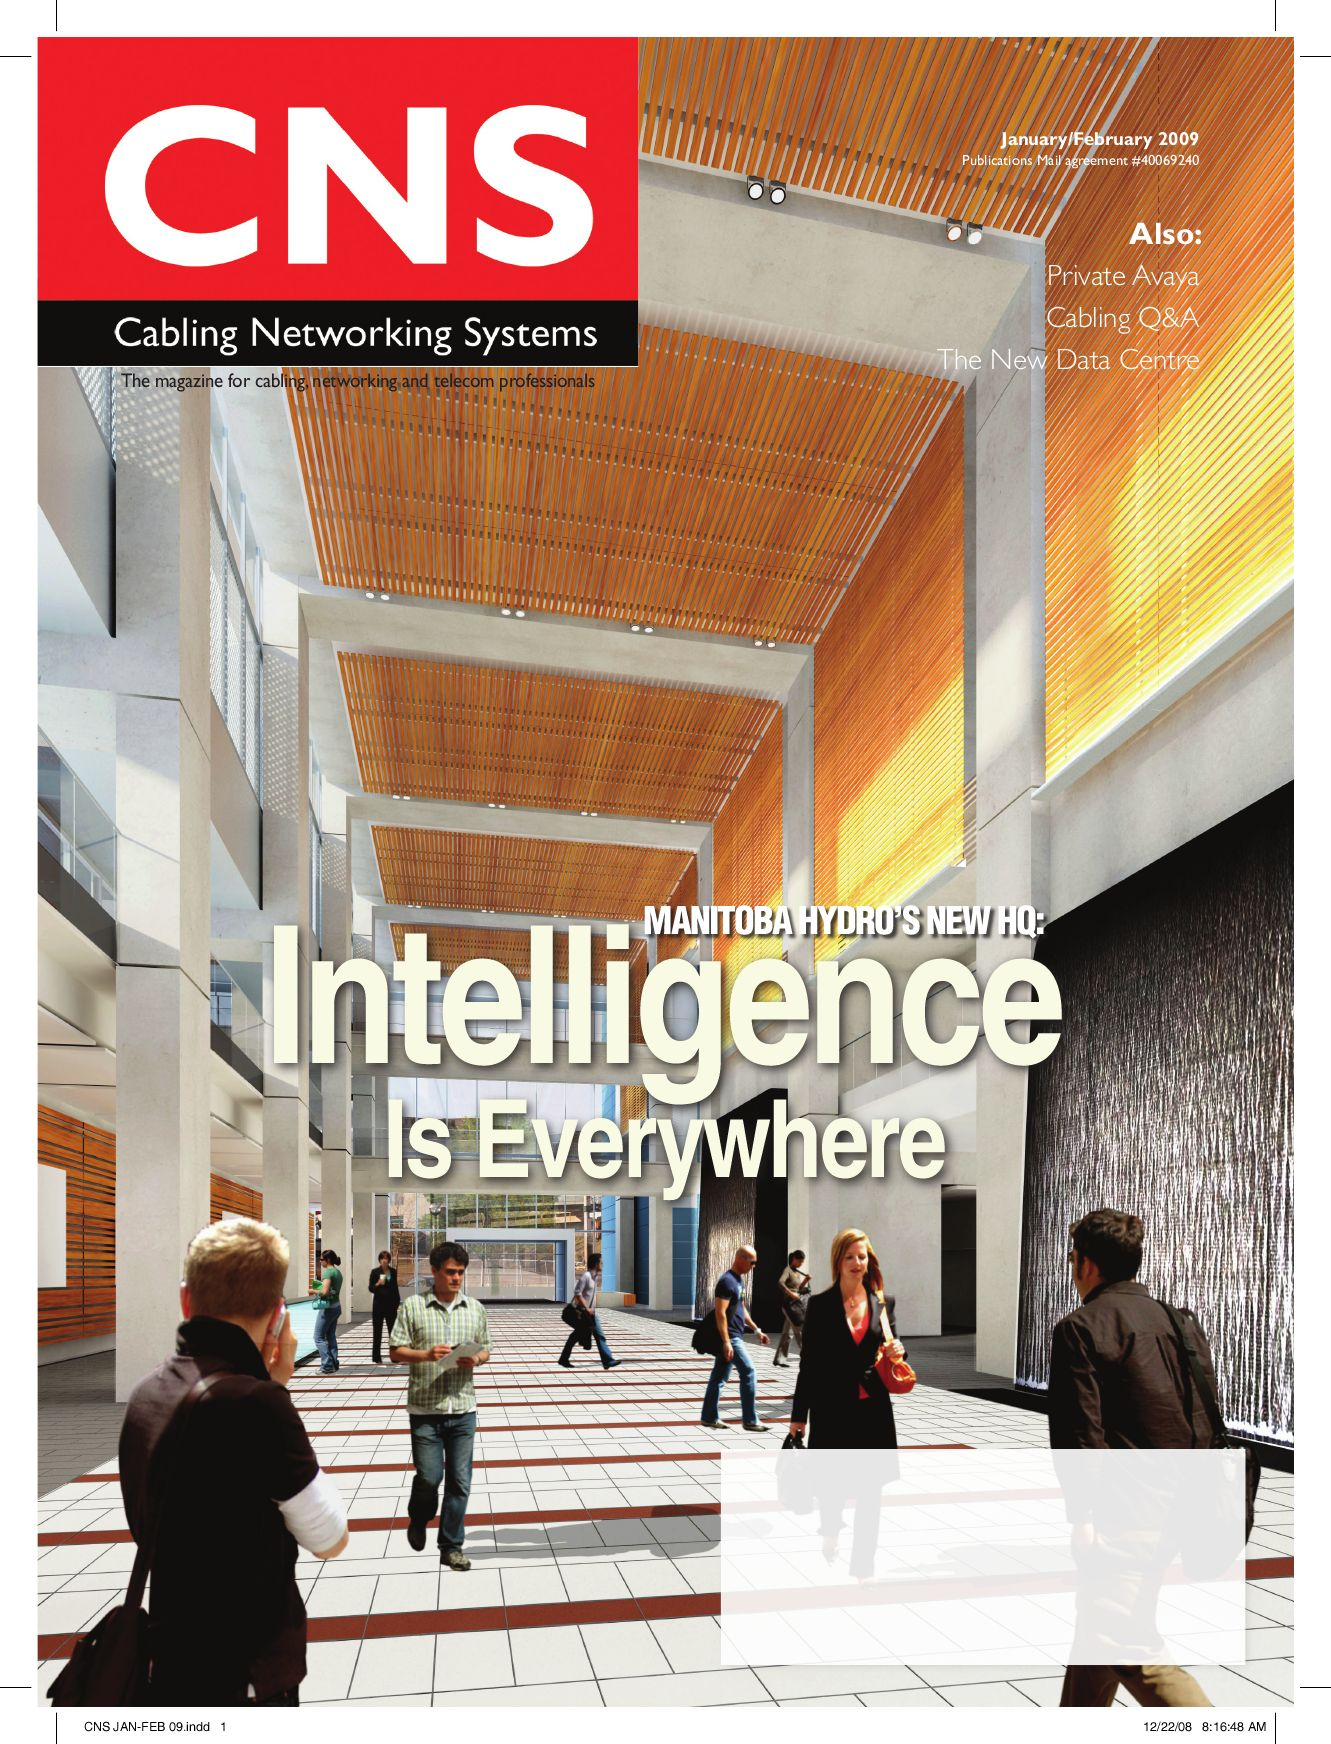 Cabling Networking Systems January/February 2009 by Annex Business